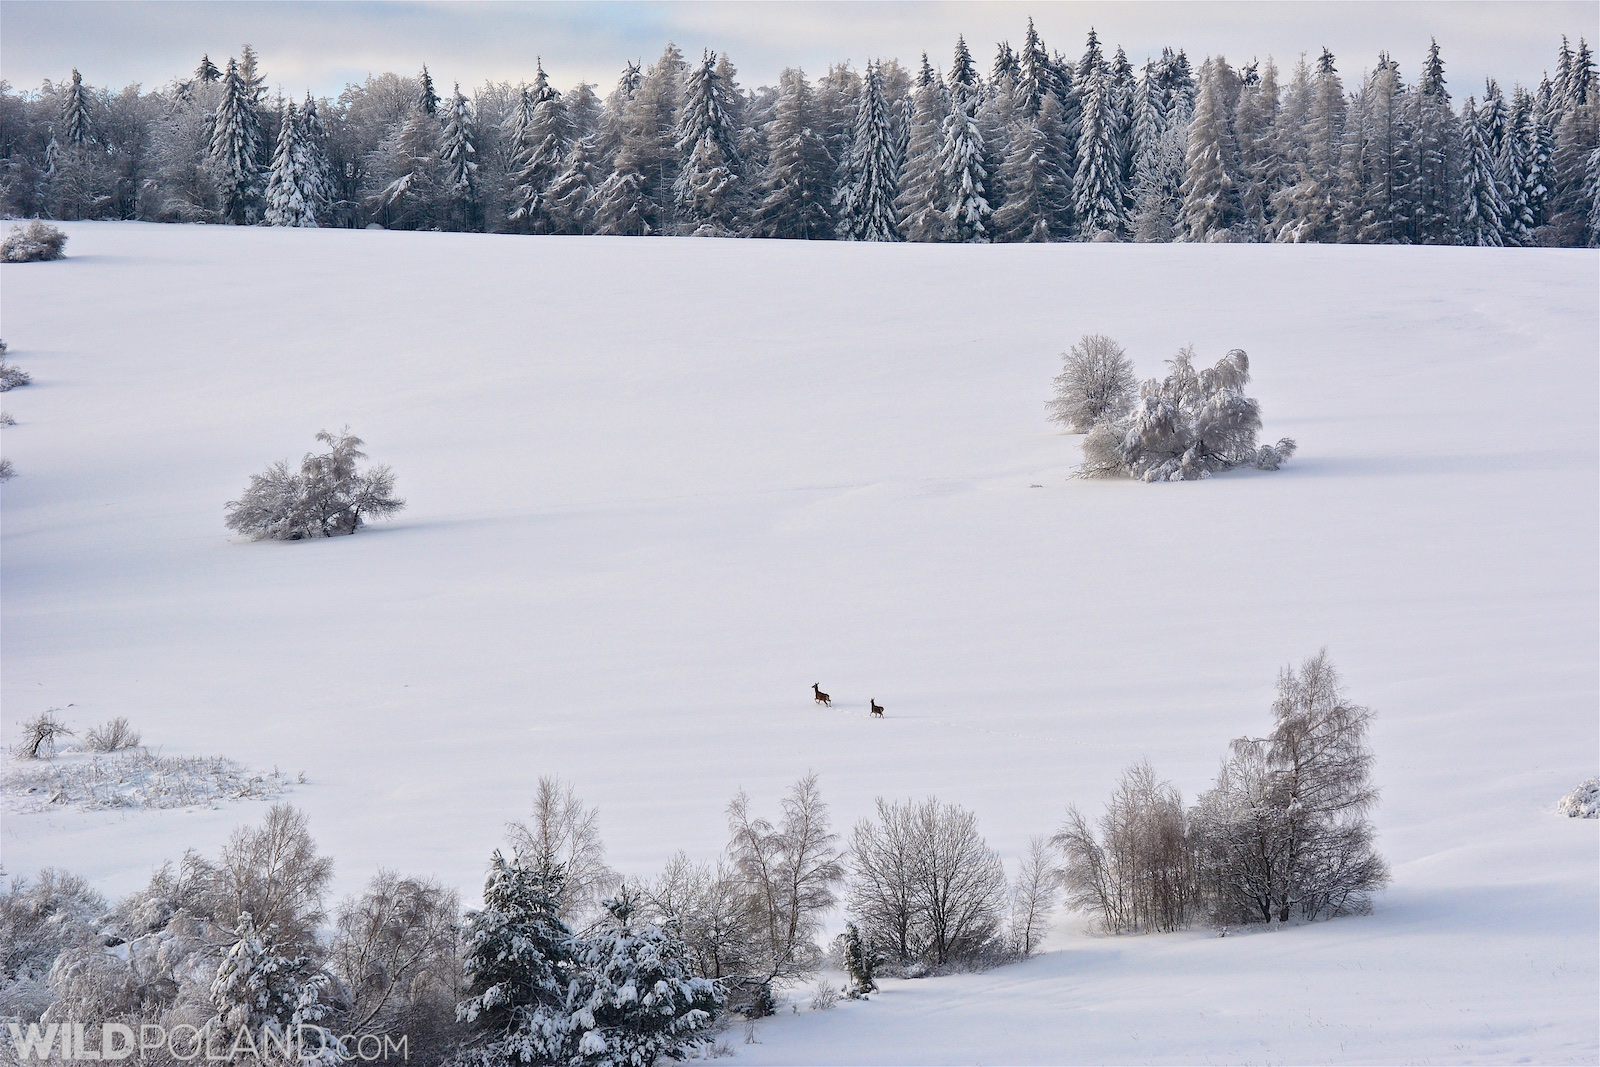 Red Deer in the Eastern Carpathians. Photo by Gotz Rahne